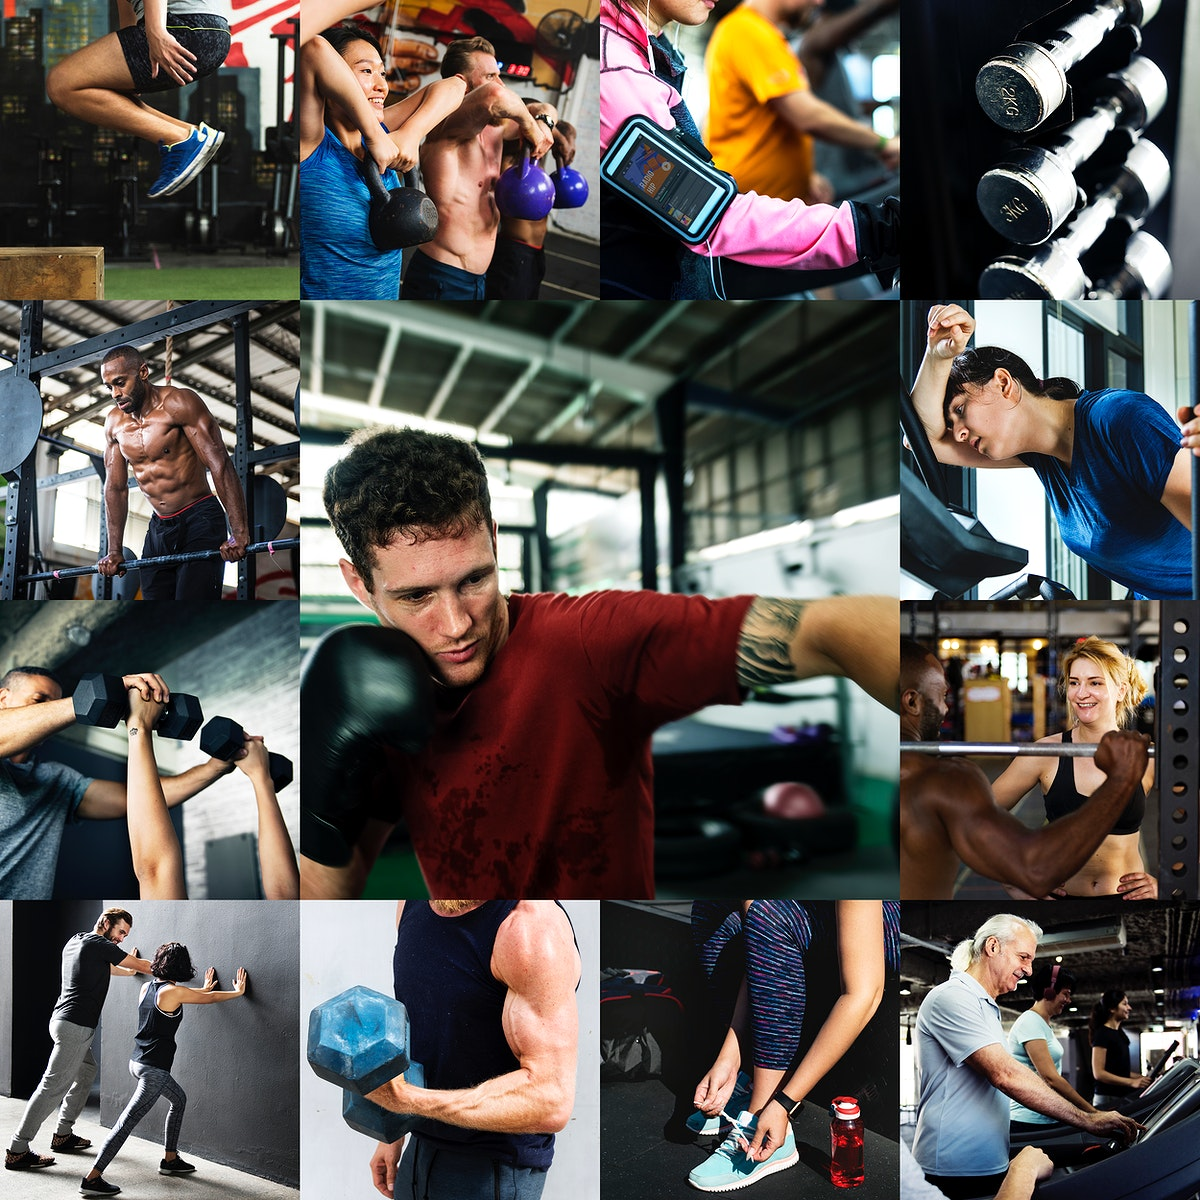 Diverse people in fitness gym images compilation